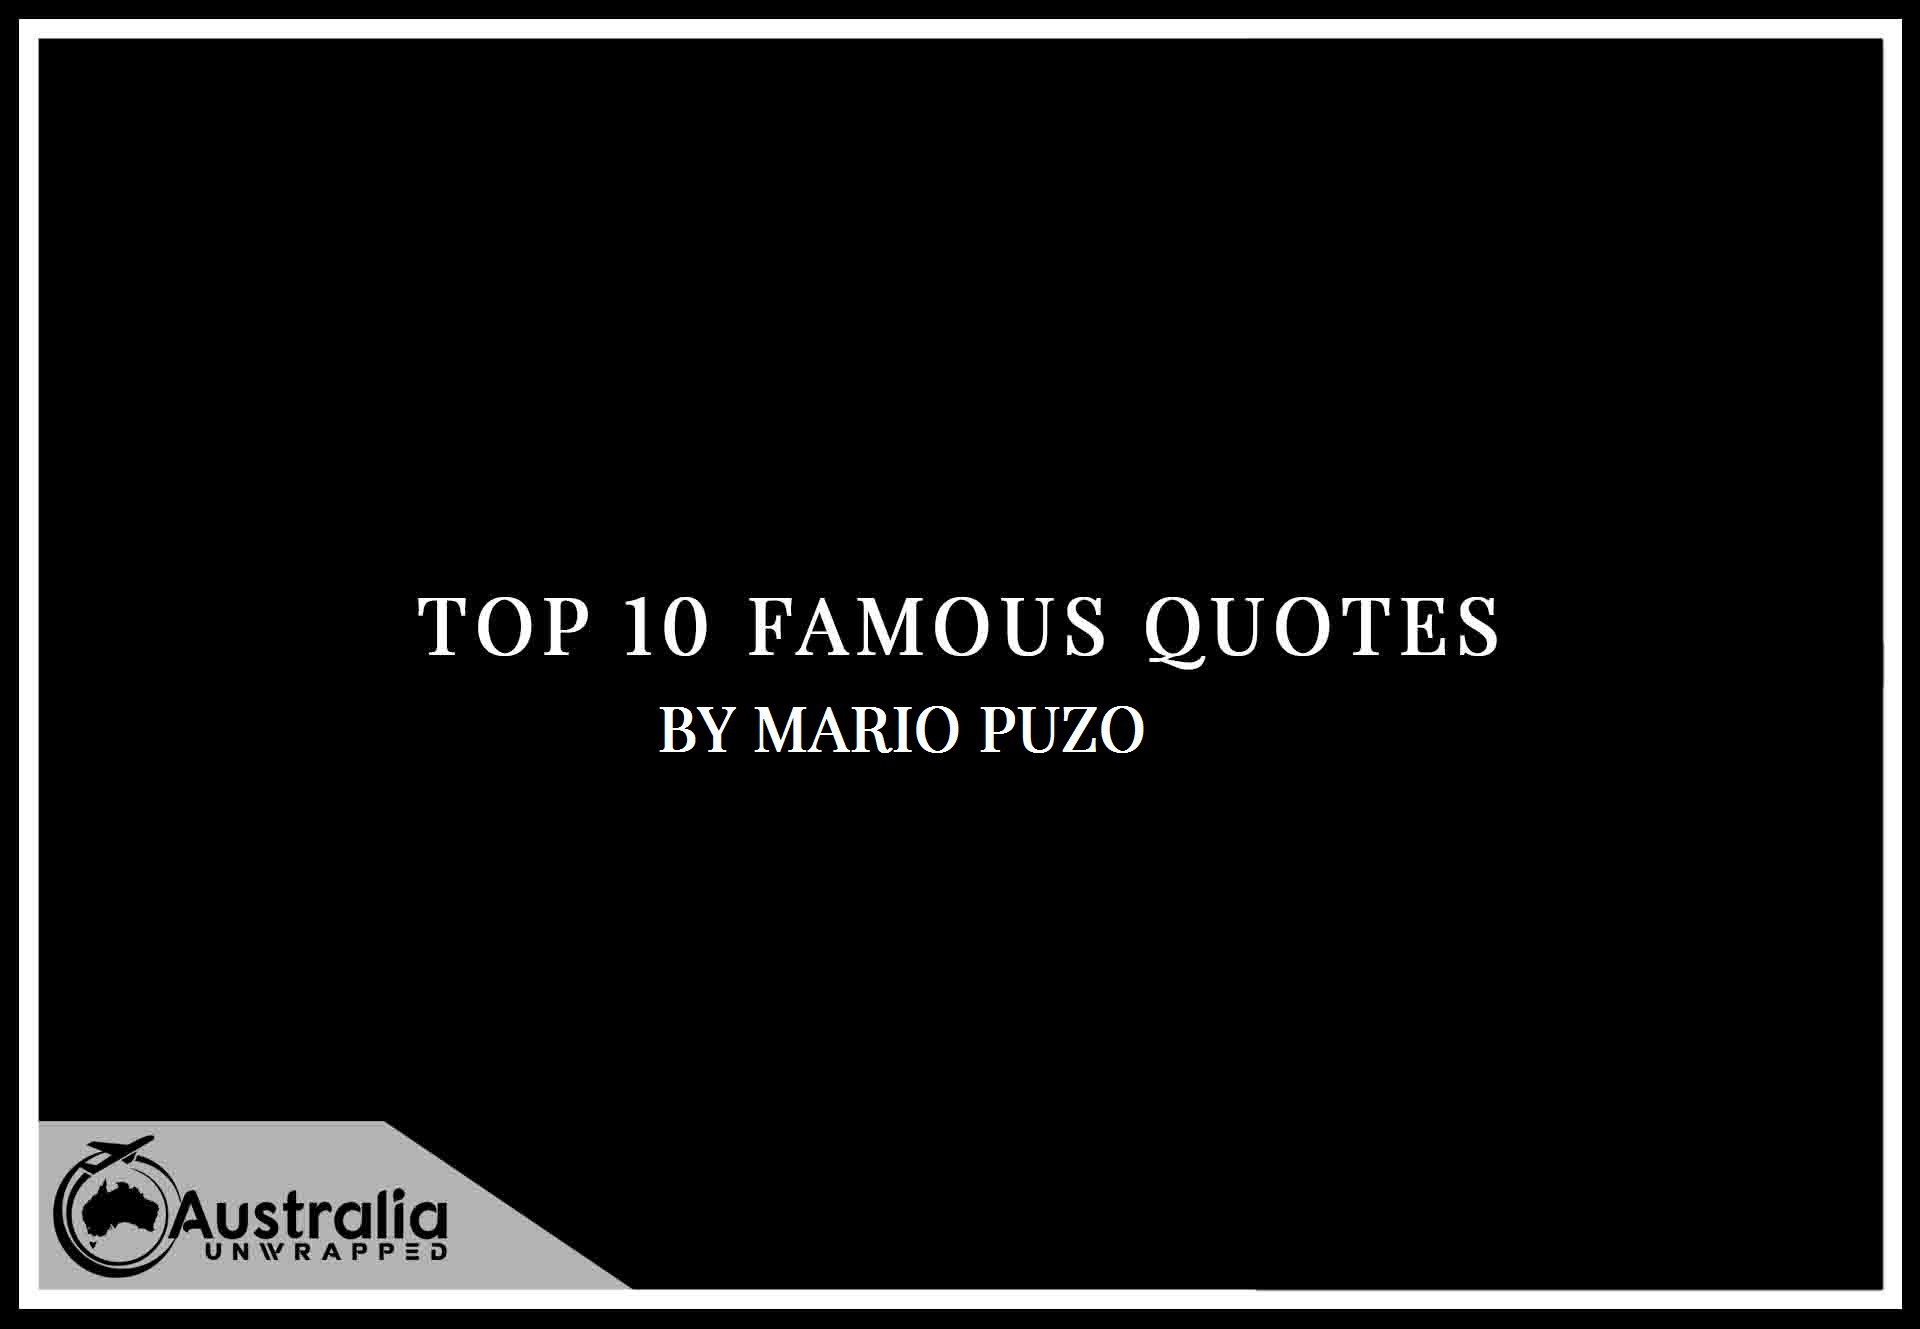 Mario Puzo's Top 10 Popular and Famous Quotes